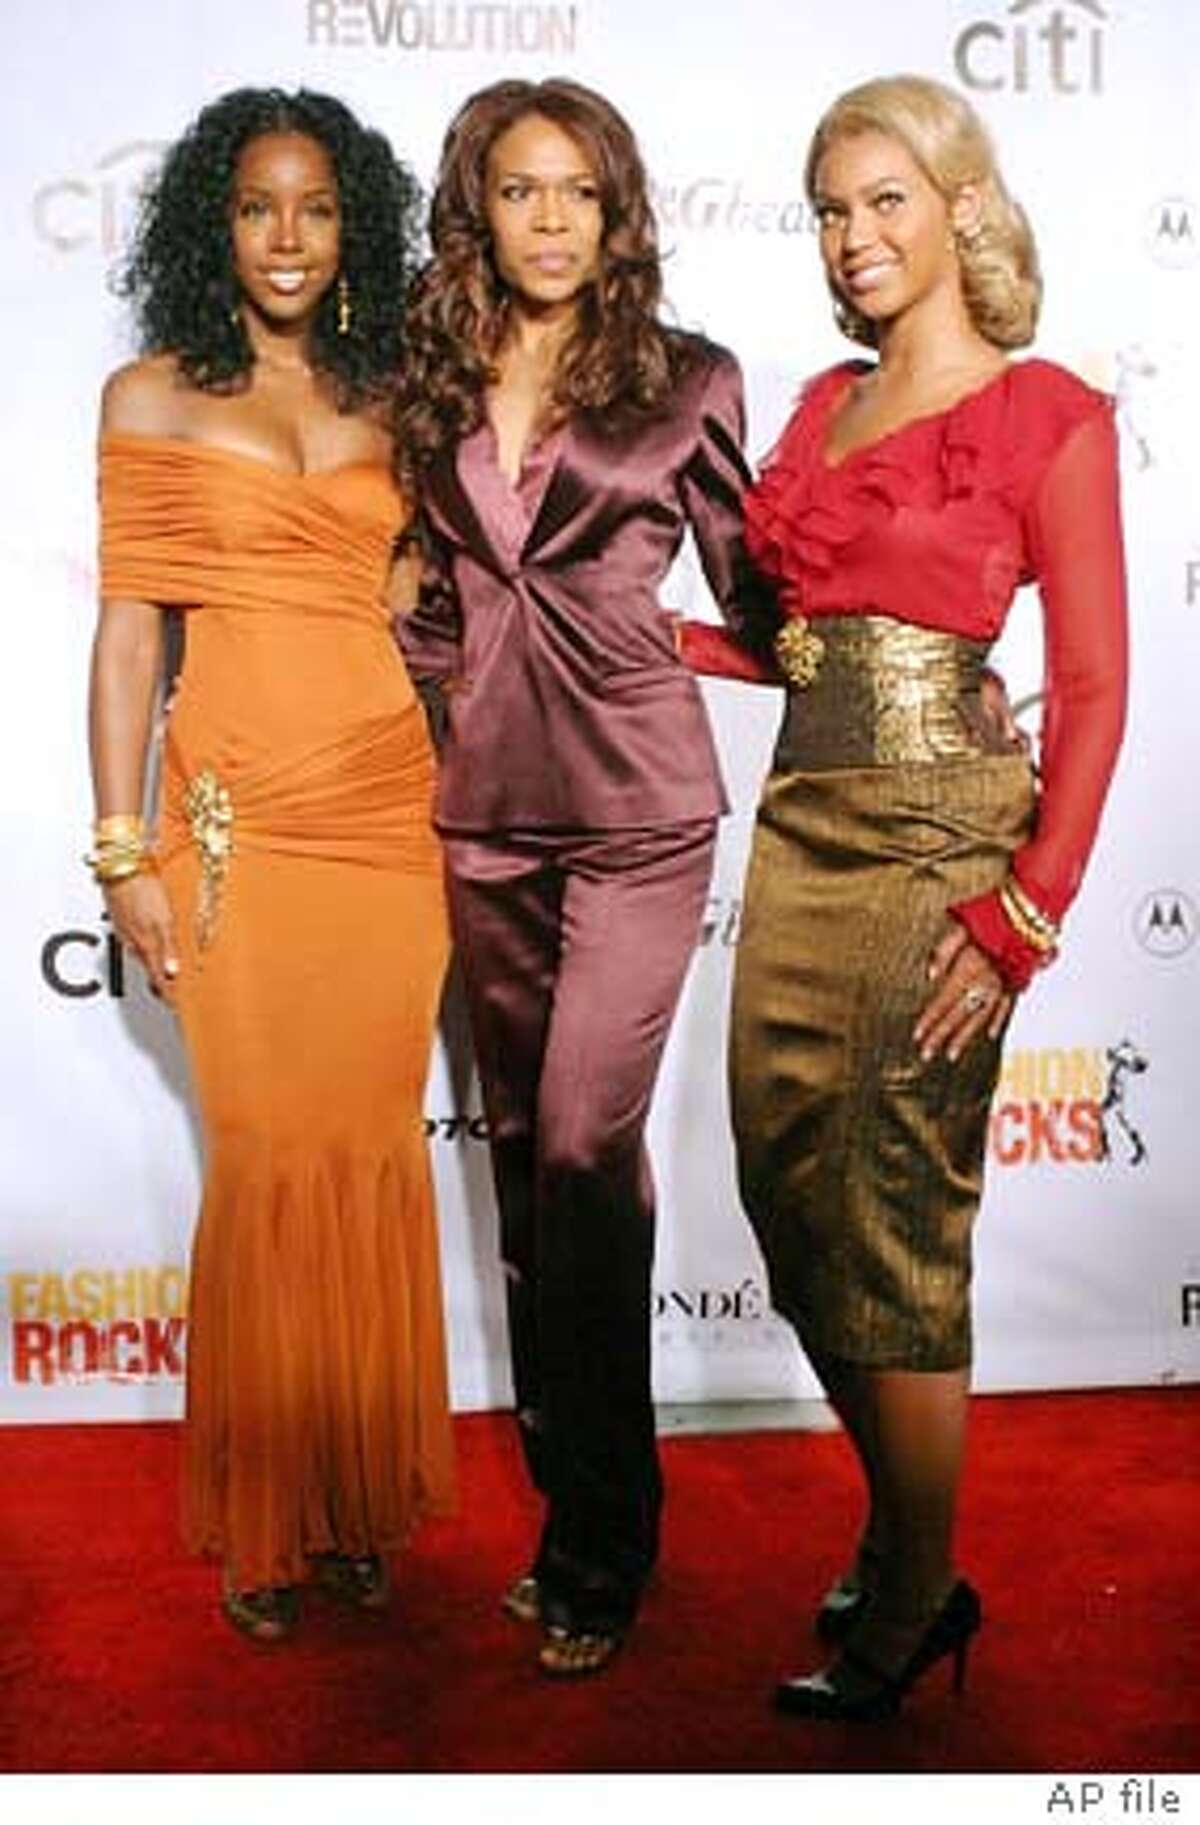 **FILE** Members of Destiny's Child, from left, Kelly Rowland, Michelle Williams and Beyonce Knowles arrive for the